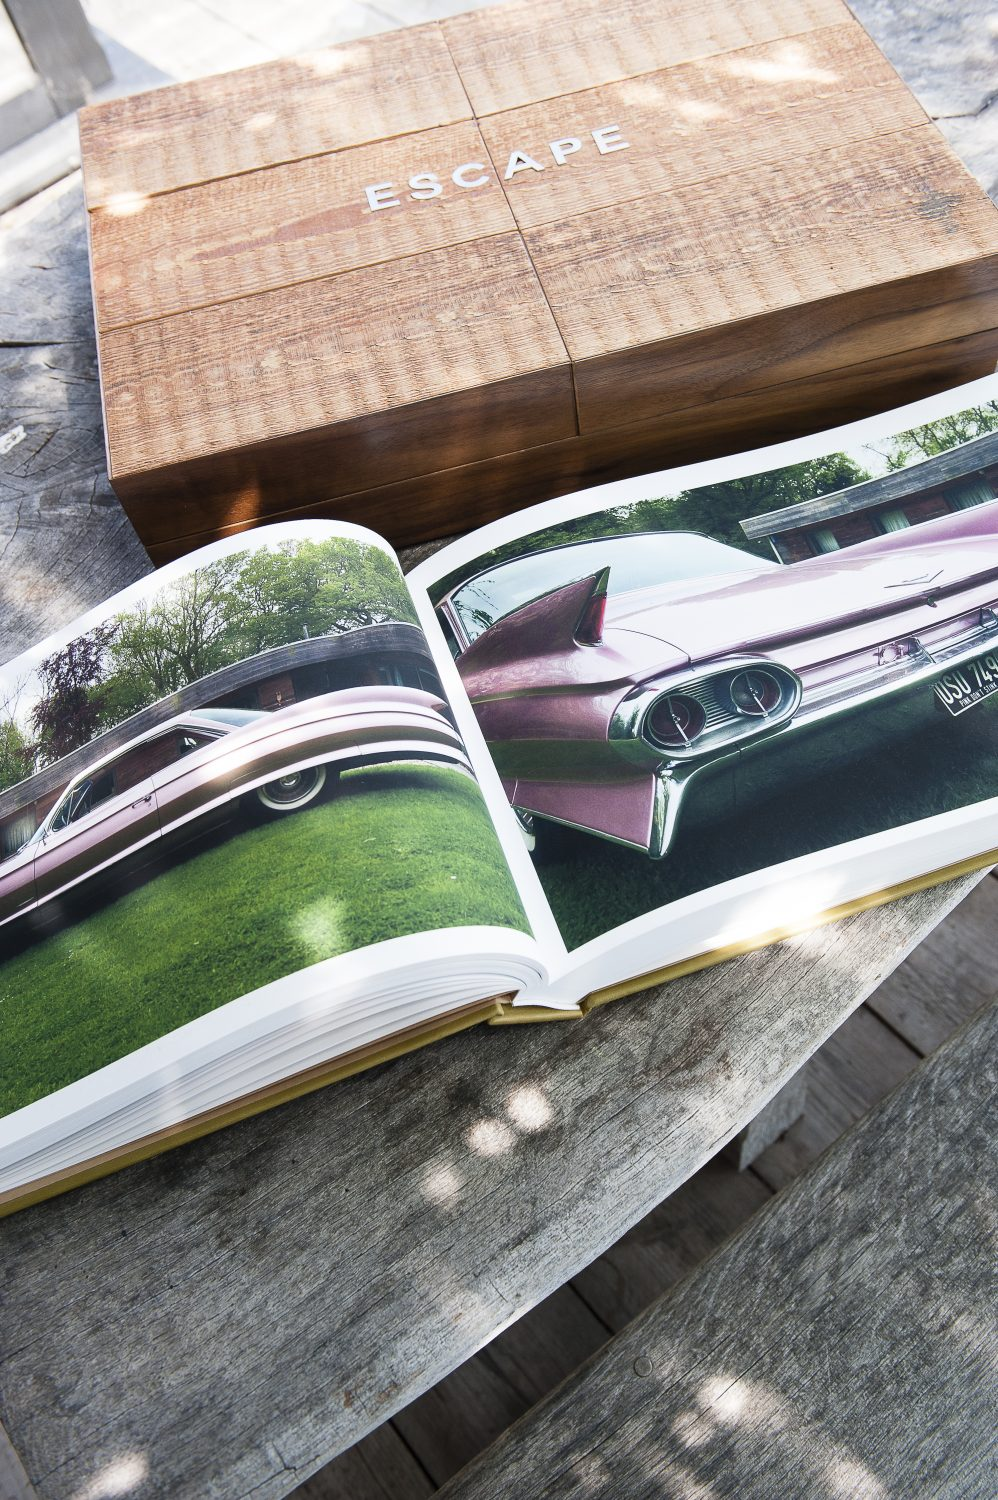 One of Cache's beautifully presented bespoke coffee table books